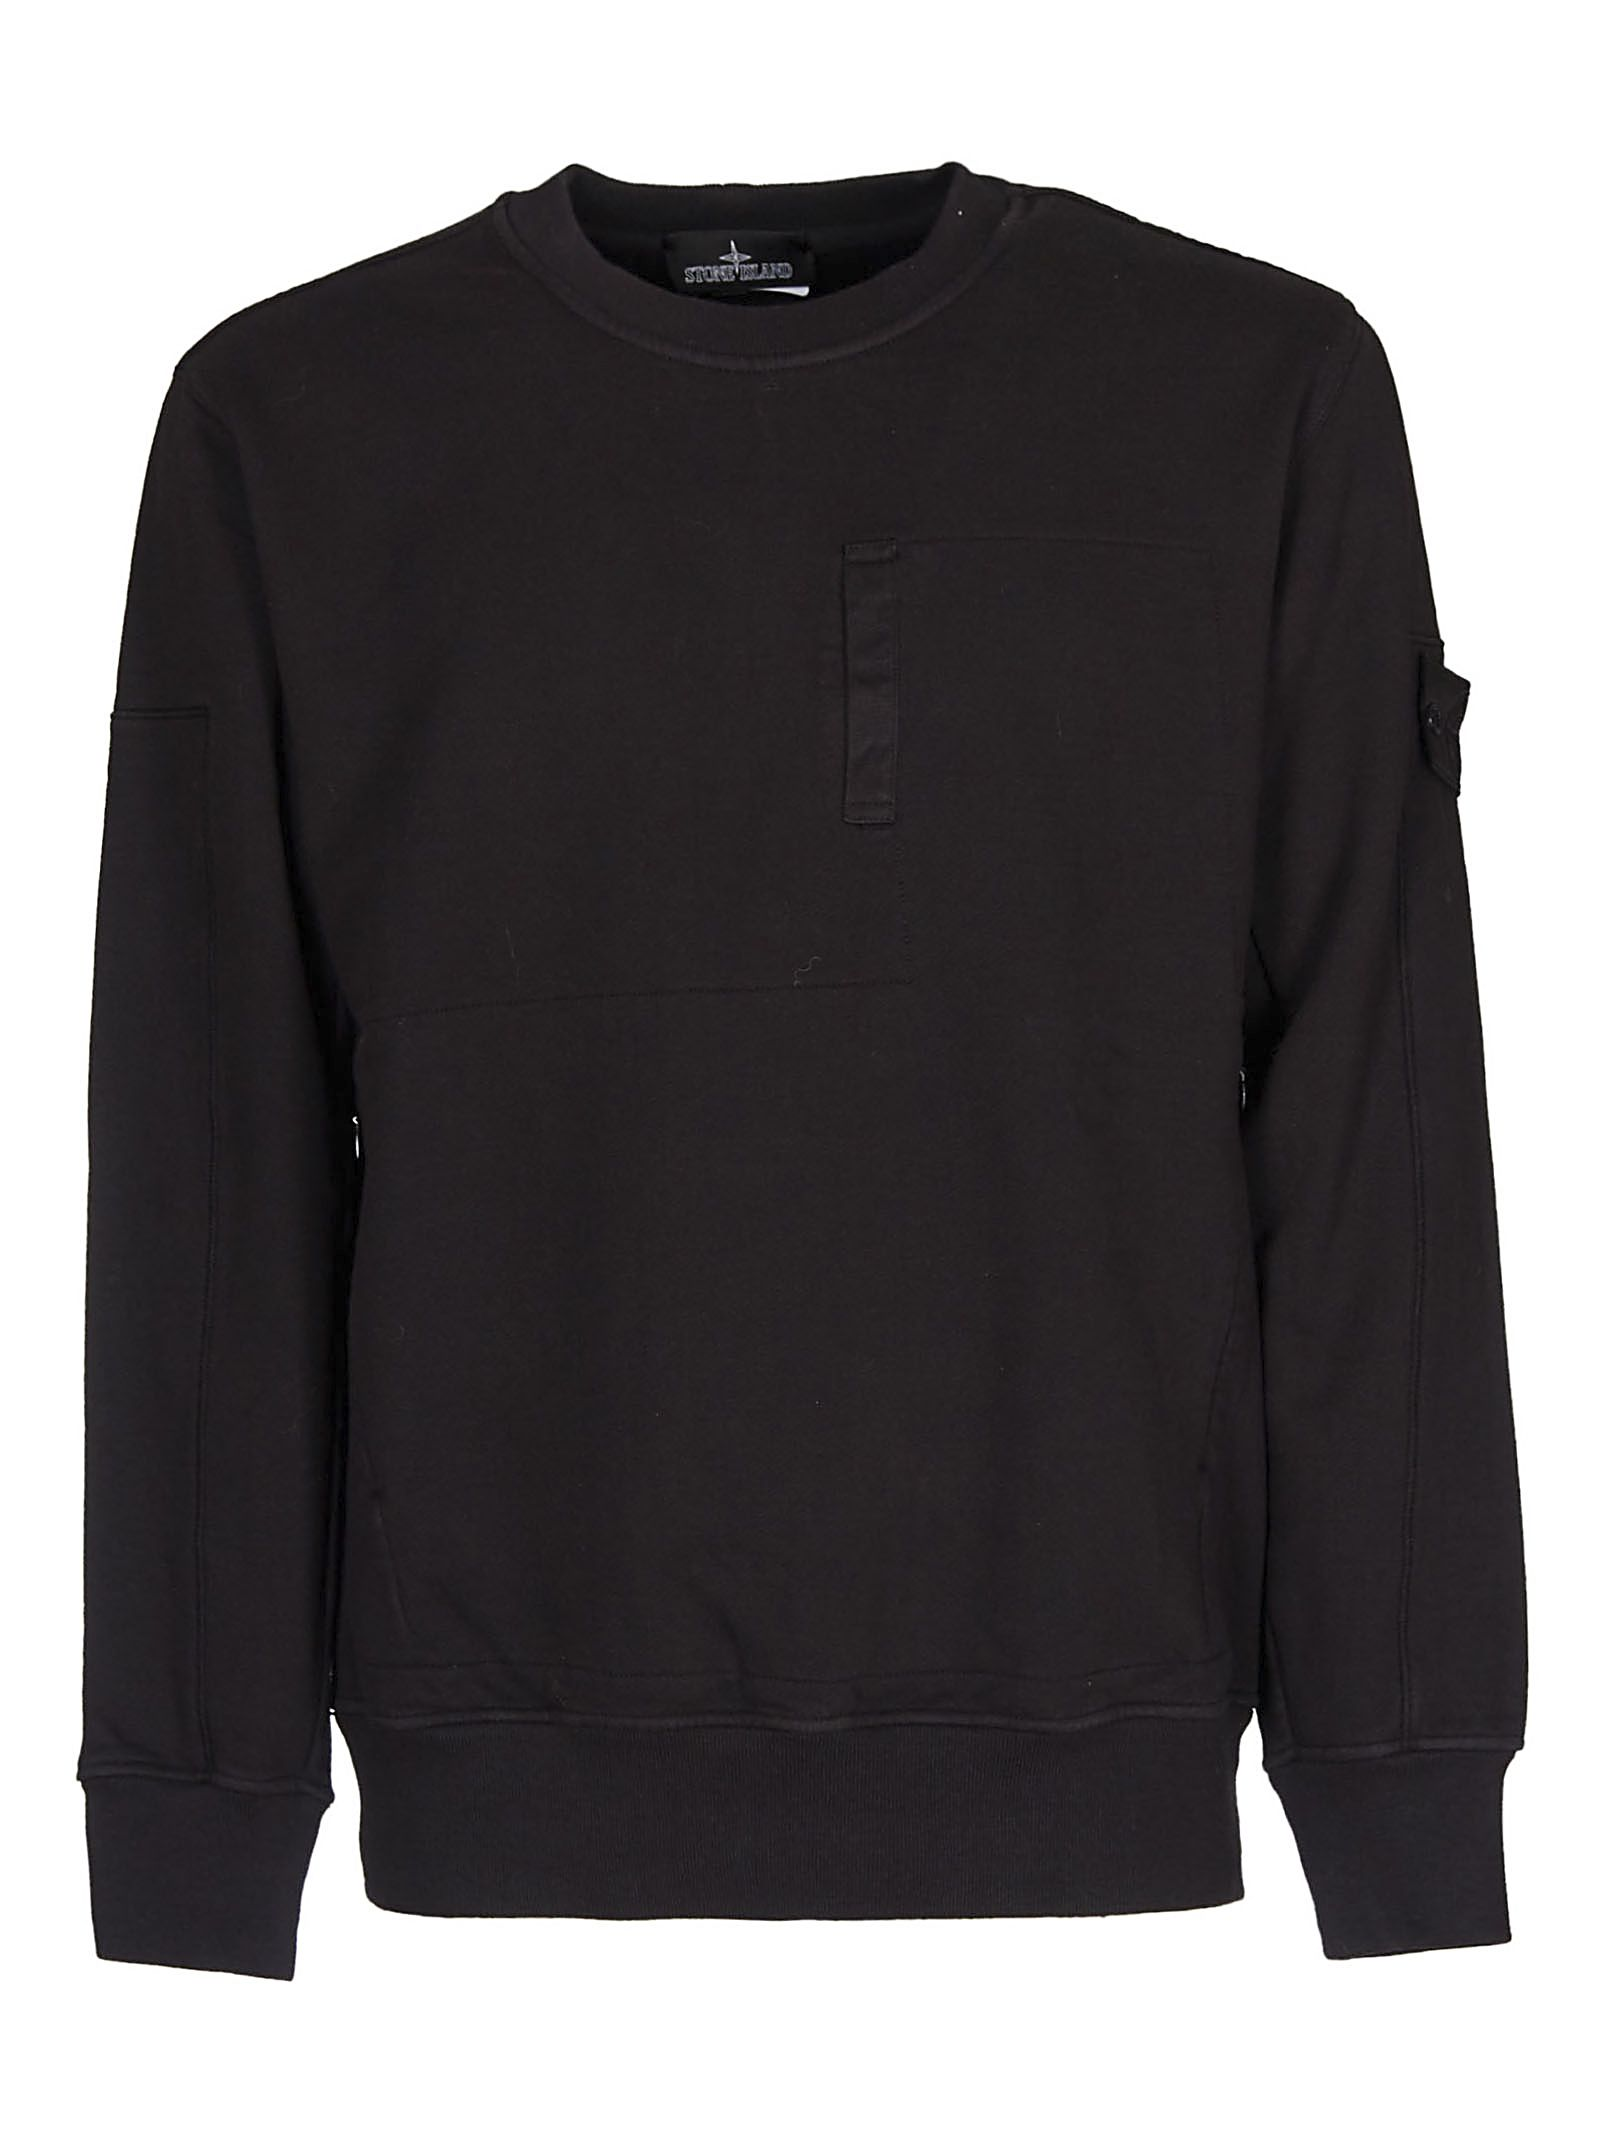 STONE ISLAND SHADOW PROJECT FITTED SWEATSHIRT